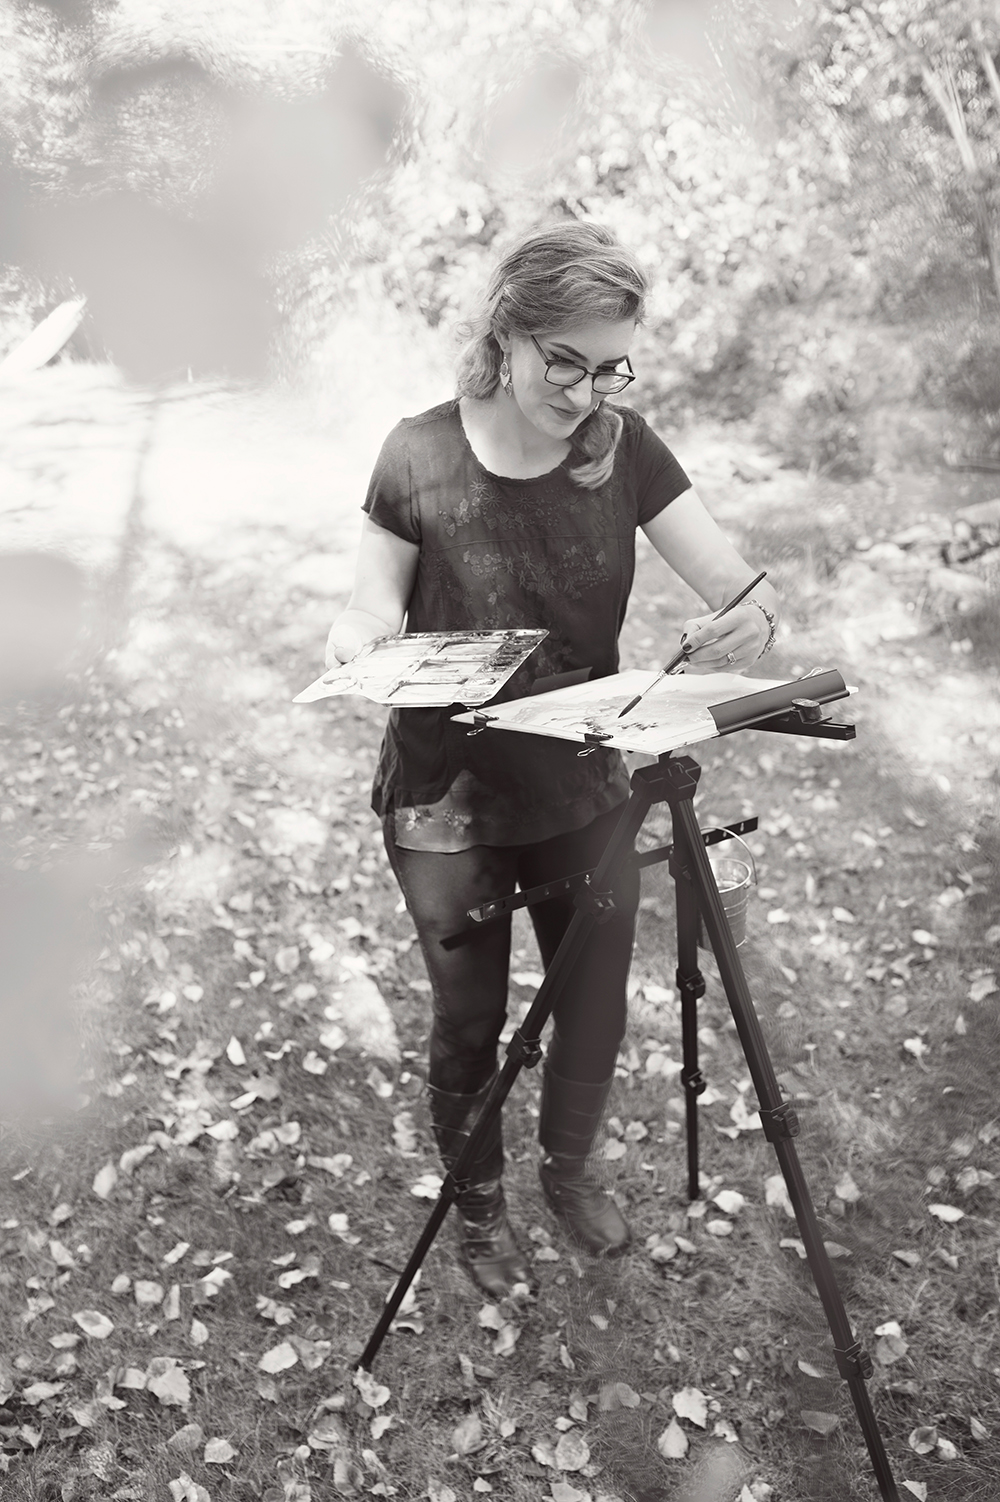 painting-plein-air-bw-1000w.jpg